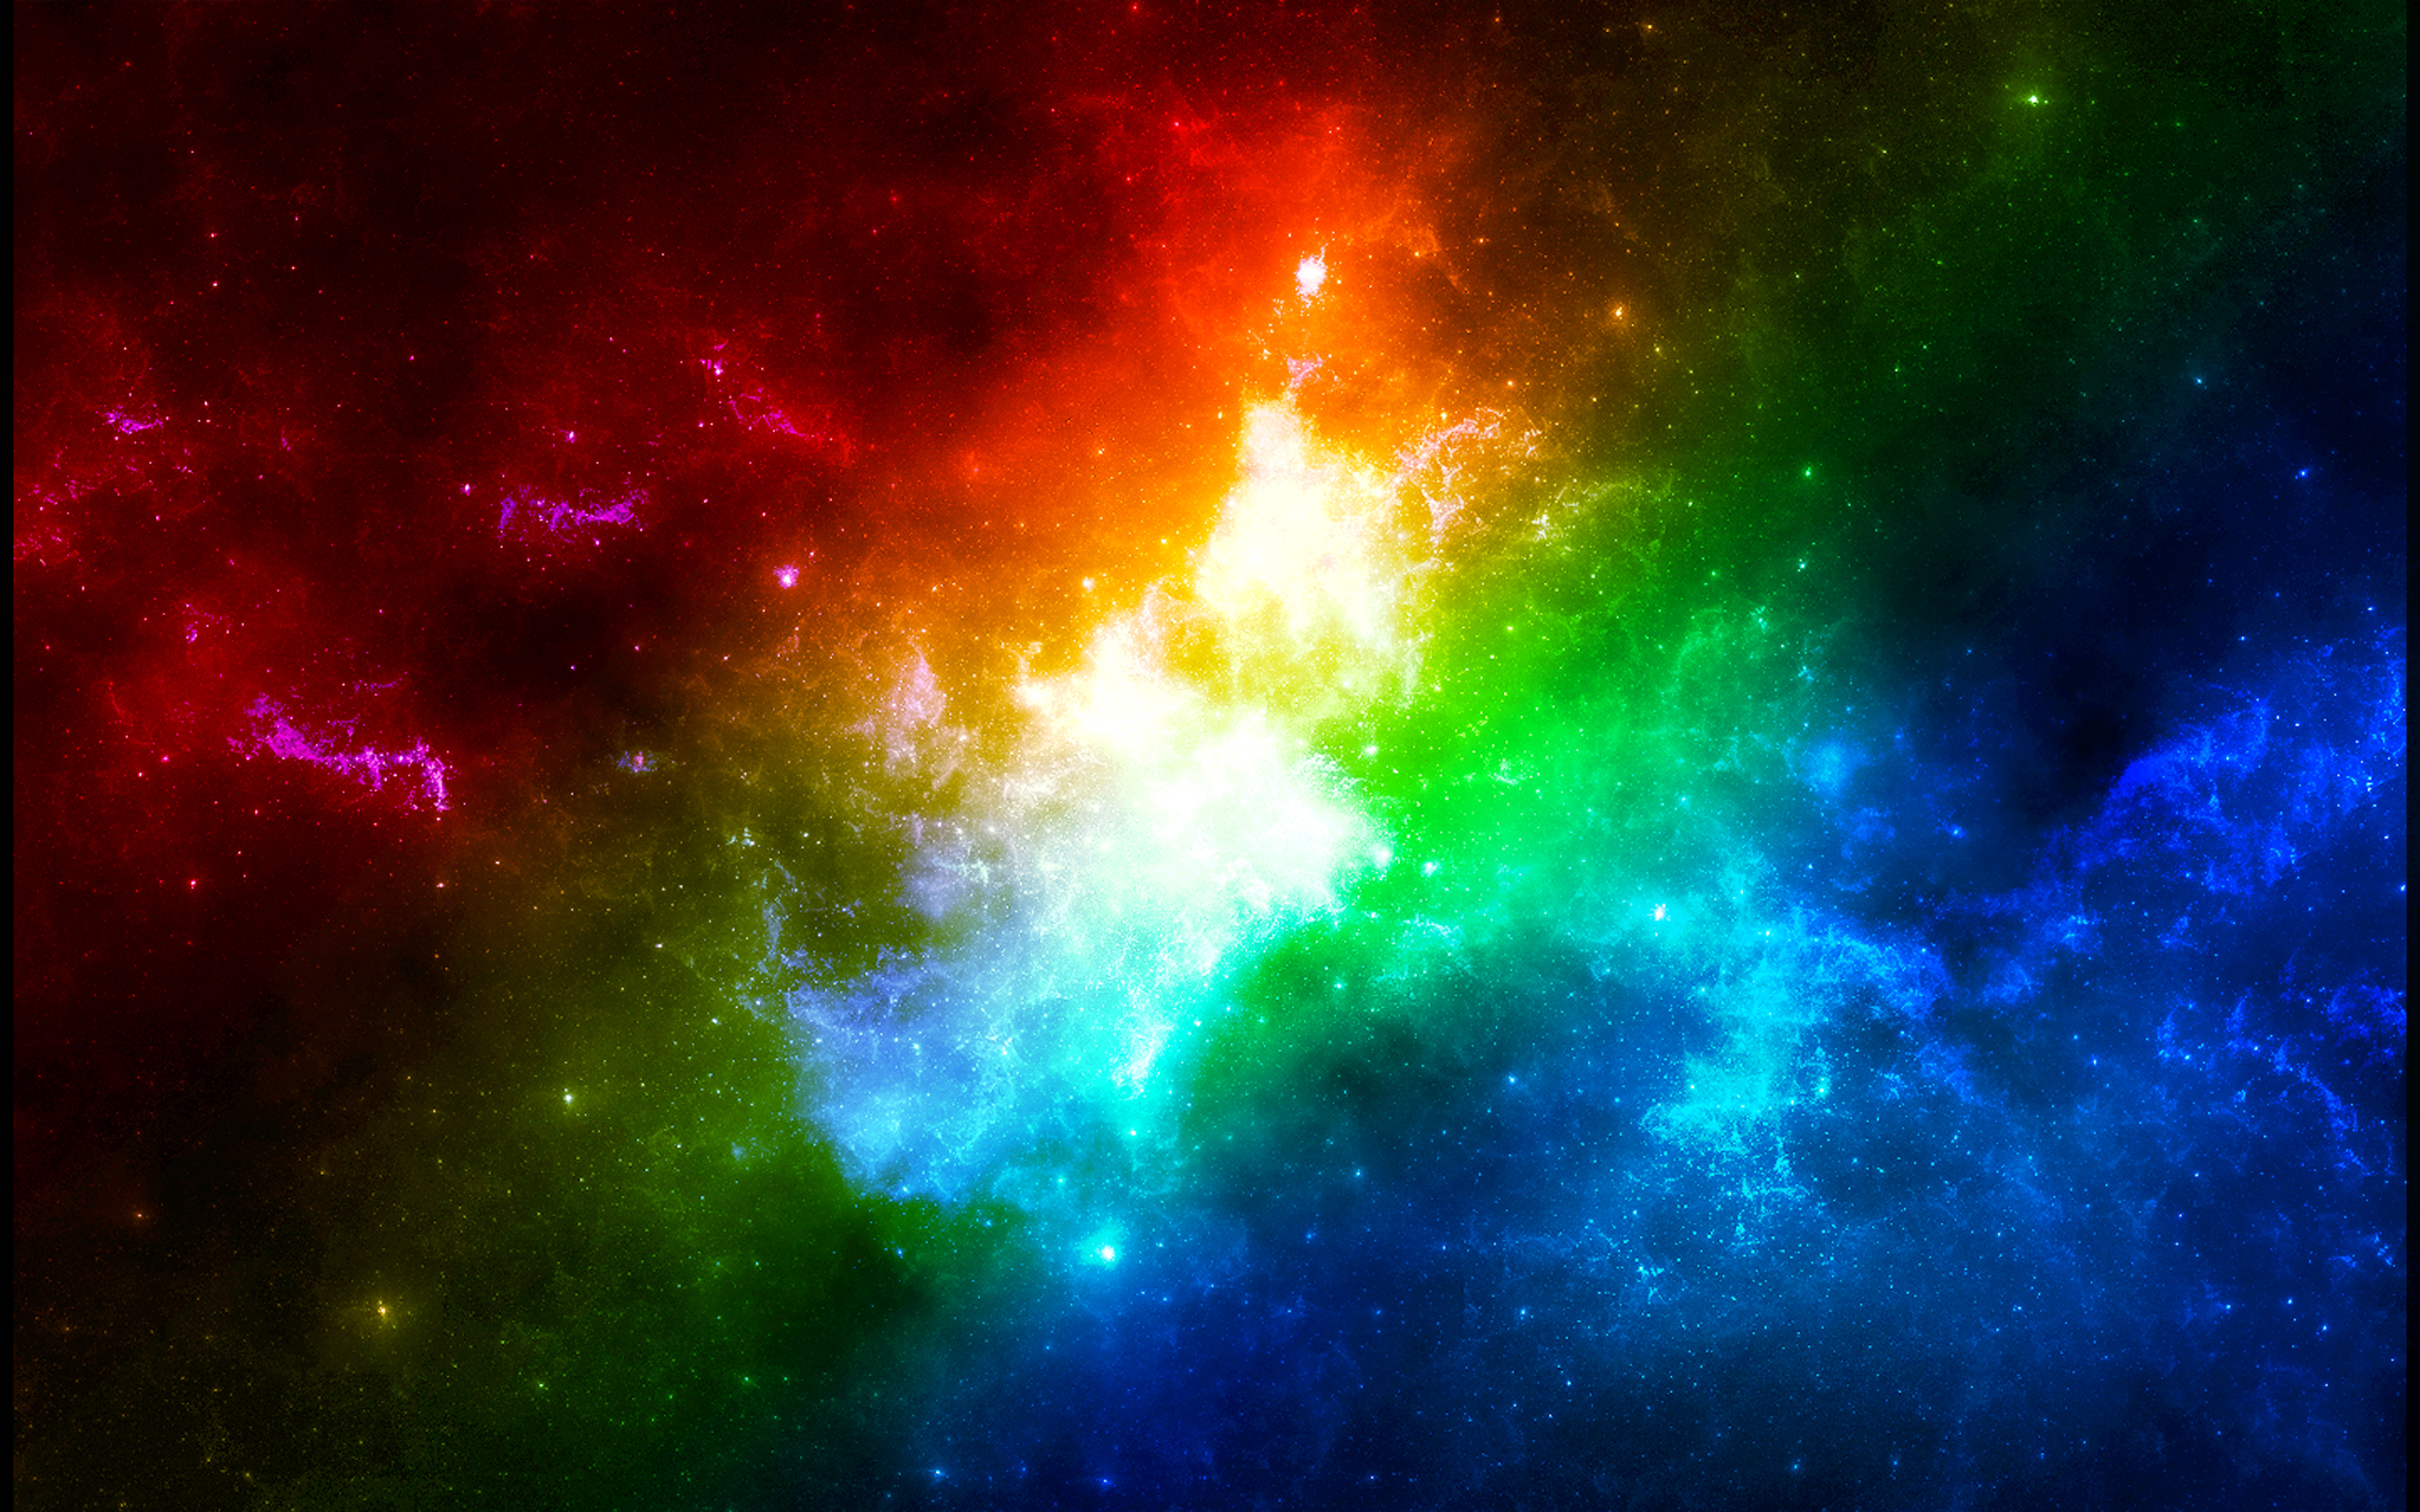 Colorful Galaxy Wallpaper   HD Wallpapers 2560x1600